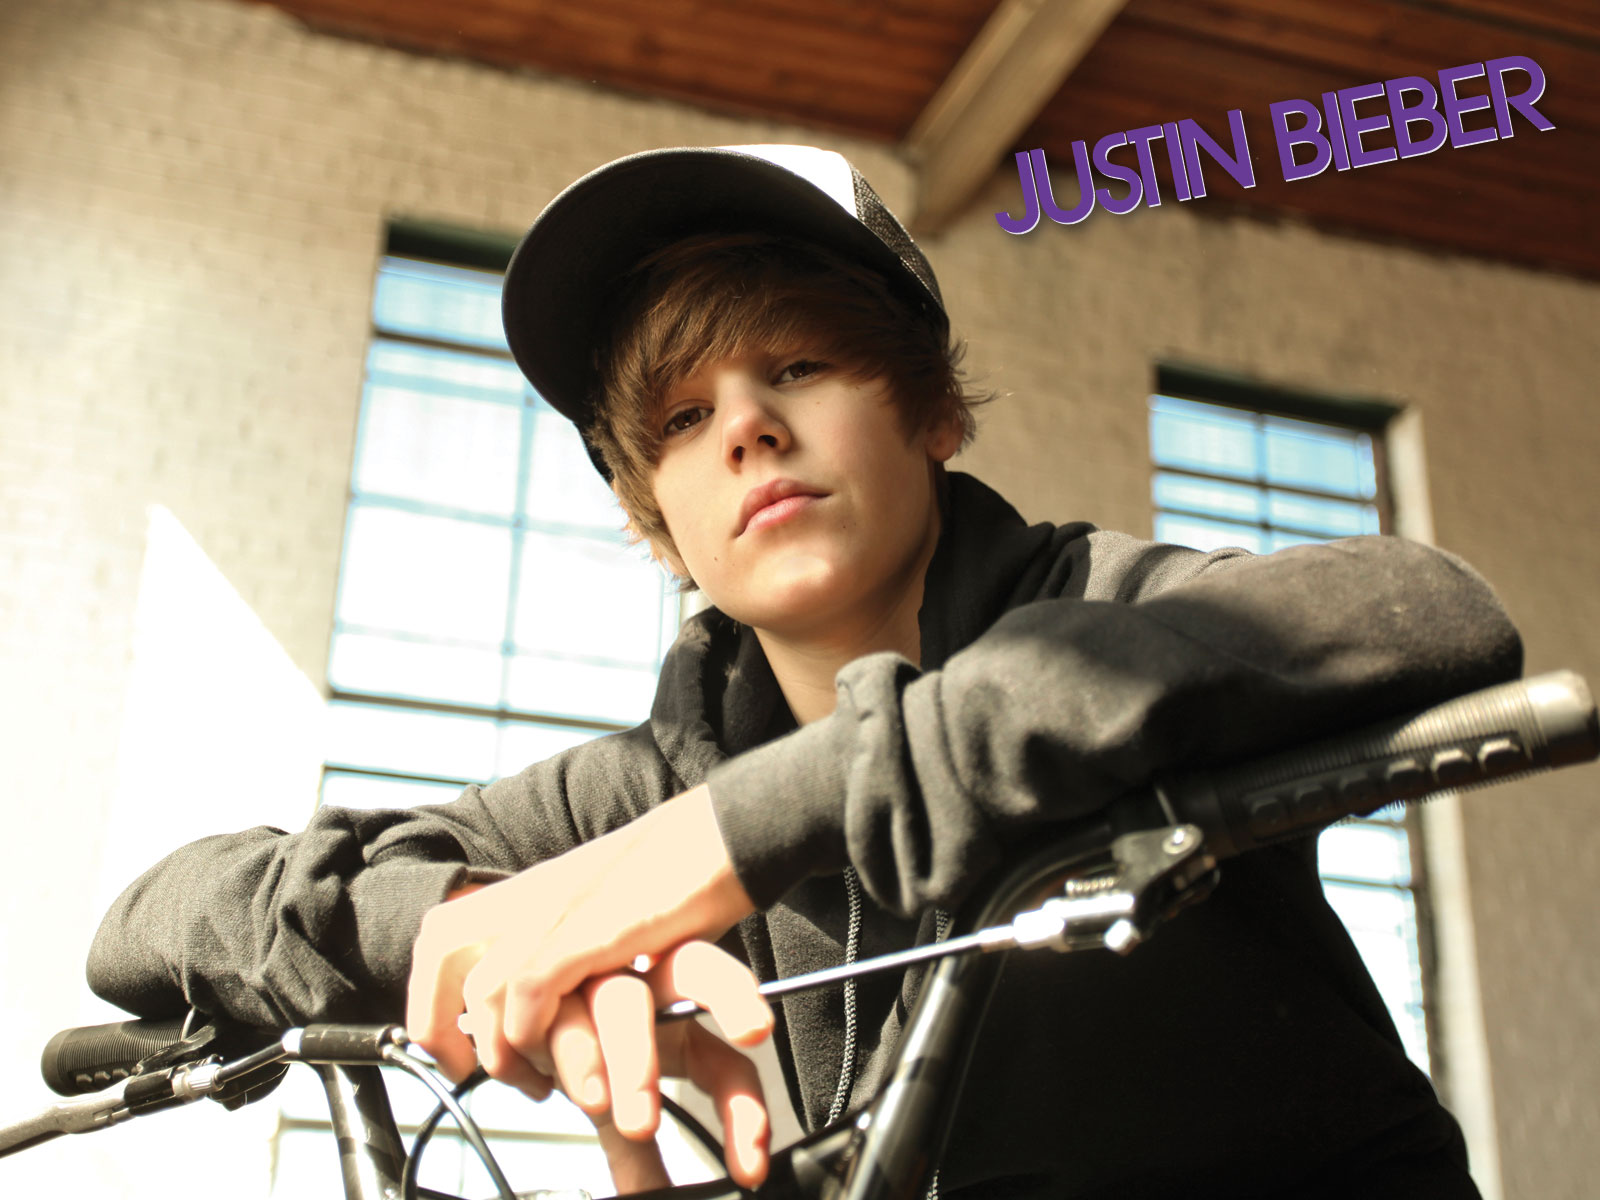 http://4.bp.blogspot.com/-u_waNb6nMbw/T67FhOWl-VI/AAAAAAAADCc/UDfa5wiJTE0/s1600/The-best-top-desktop-justin-bieber-wallpapers-justin-bieber-wallpaper-justin-bieber-background-hd-11.jpg